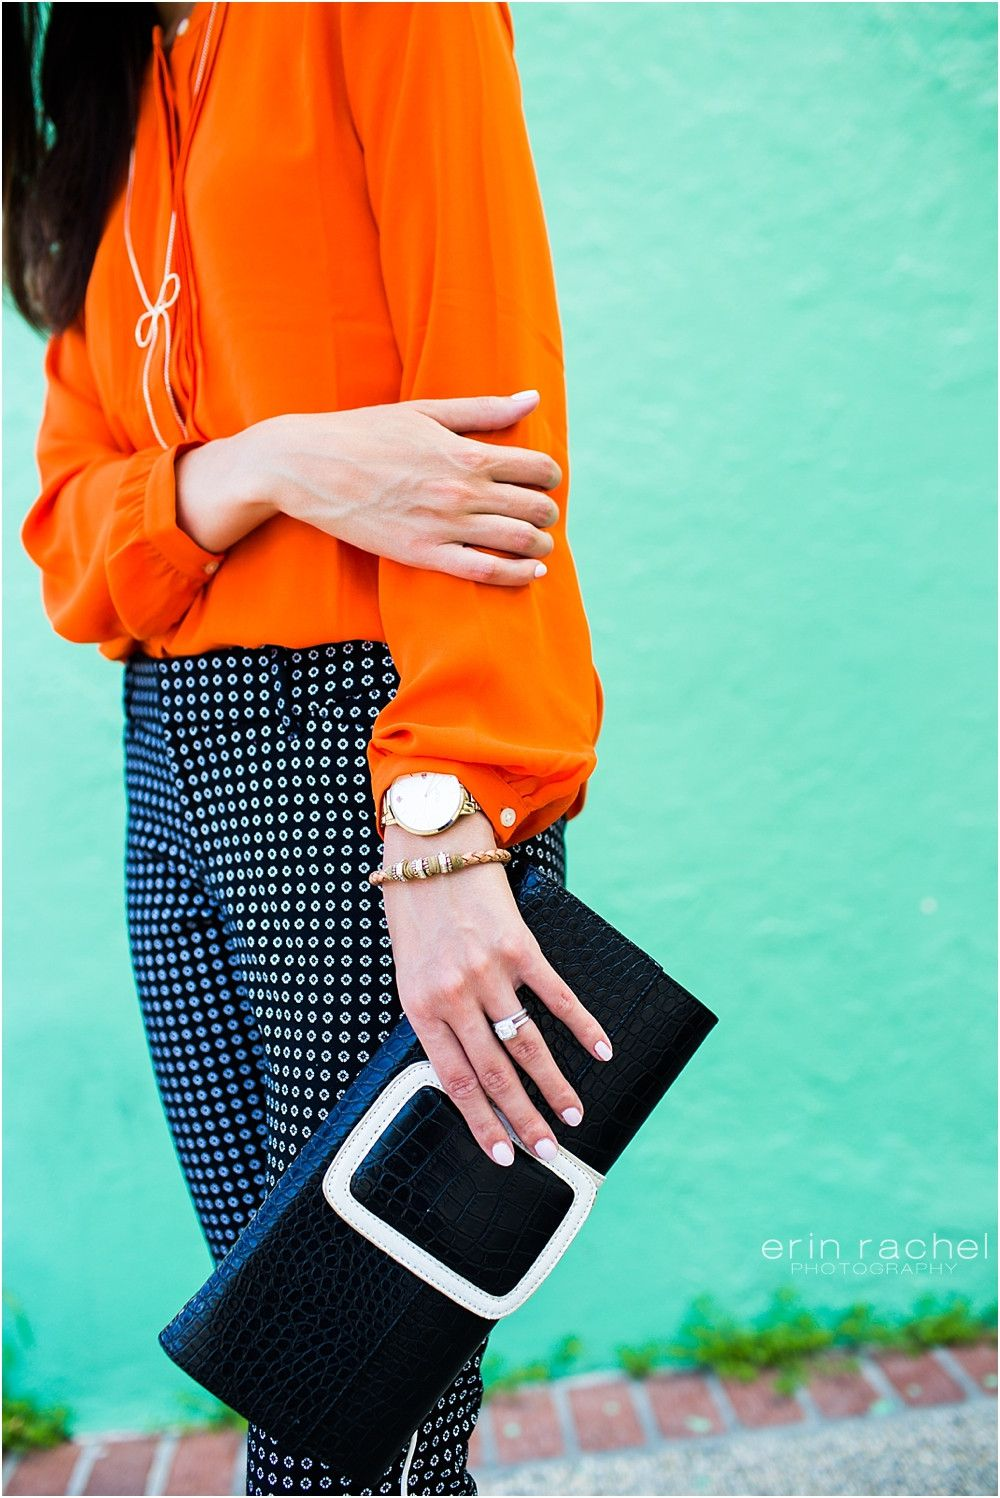 d021fa8224 McKenna Trahan of Style Waltz adds a pop of color with a bright orange  blouse from Banana Republic.